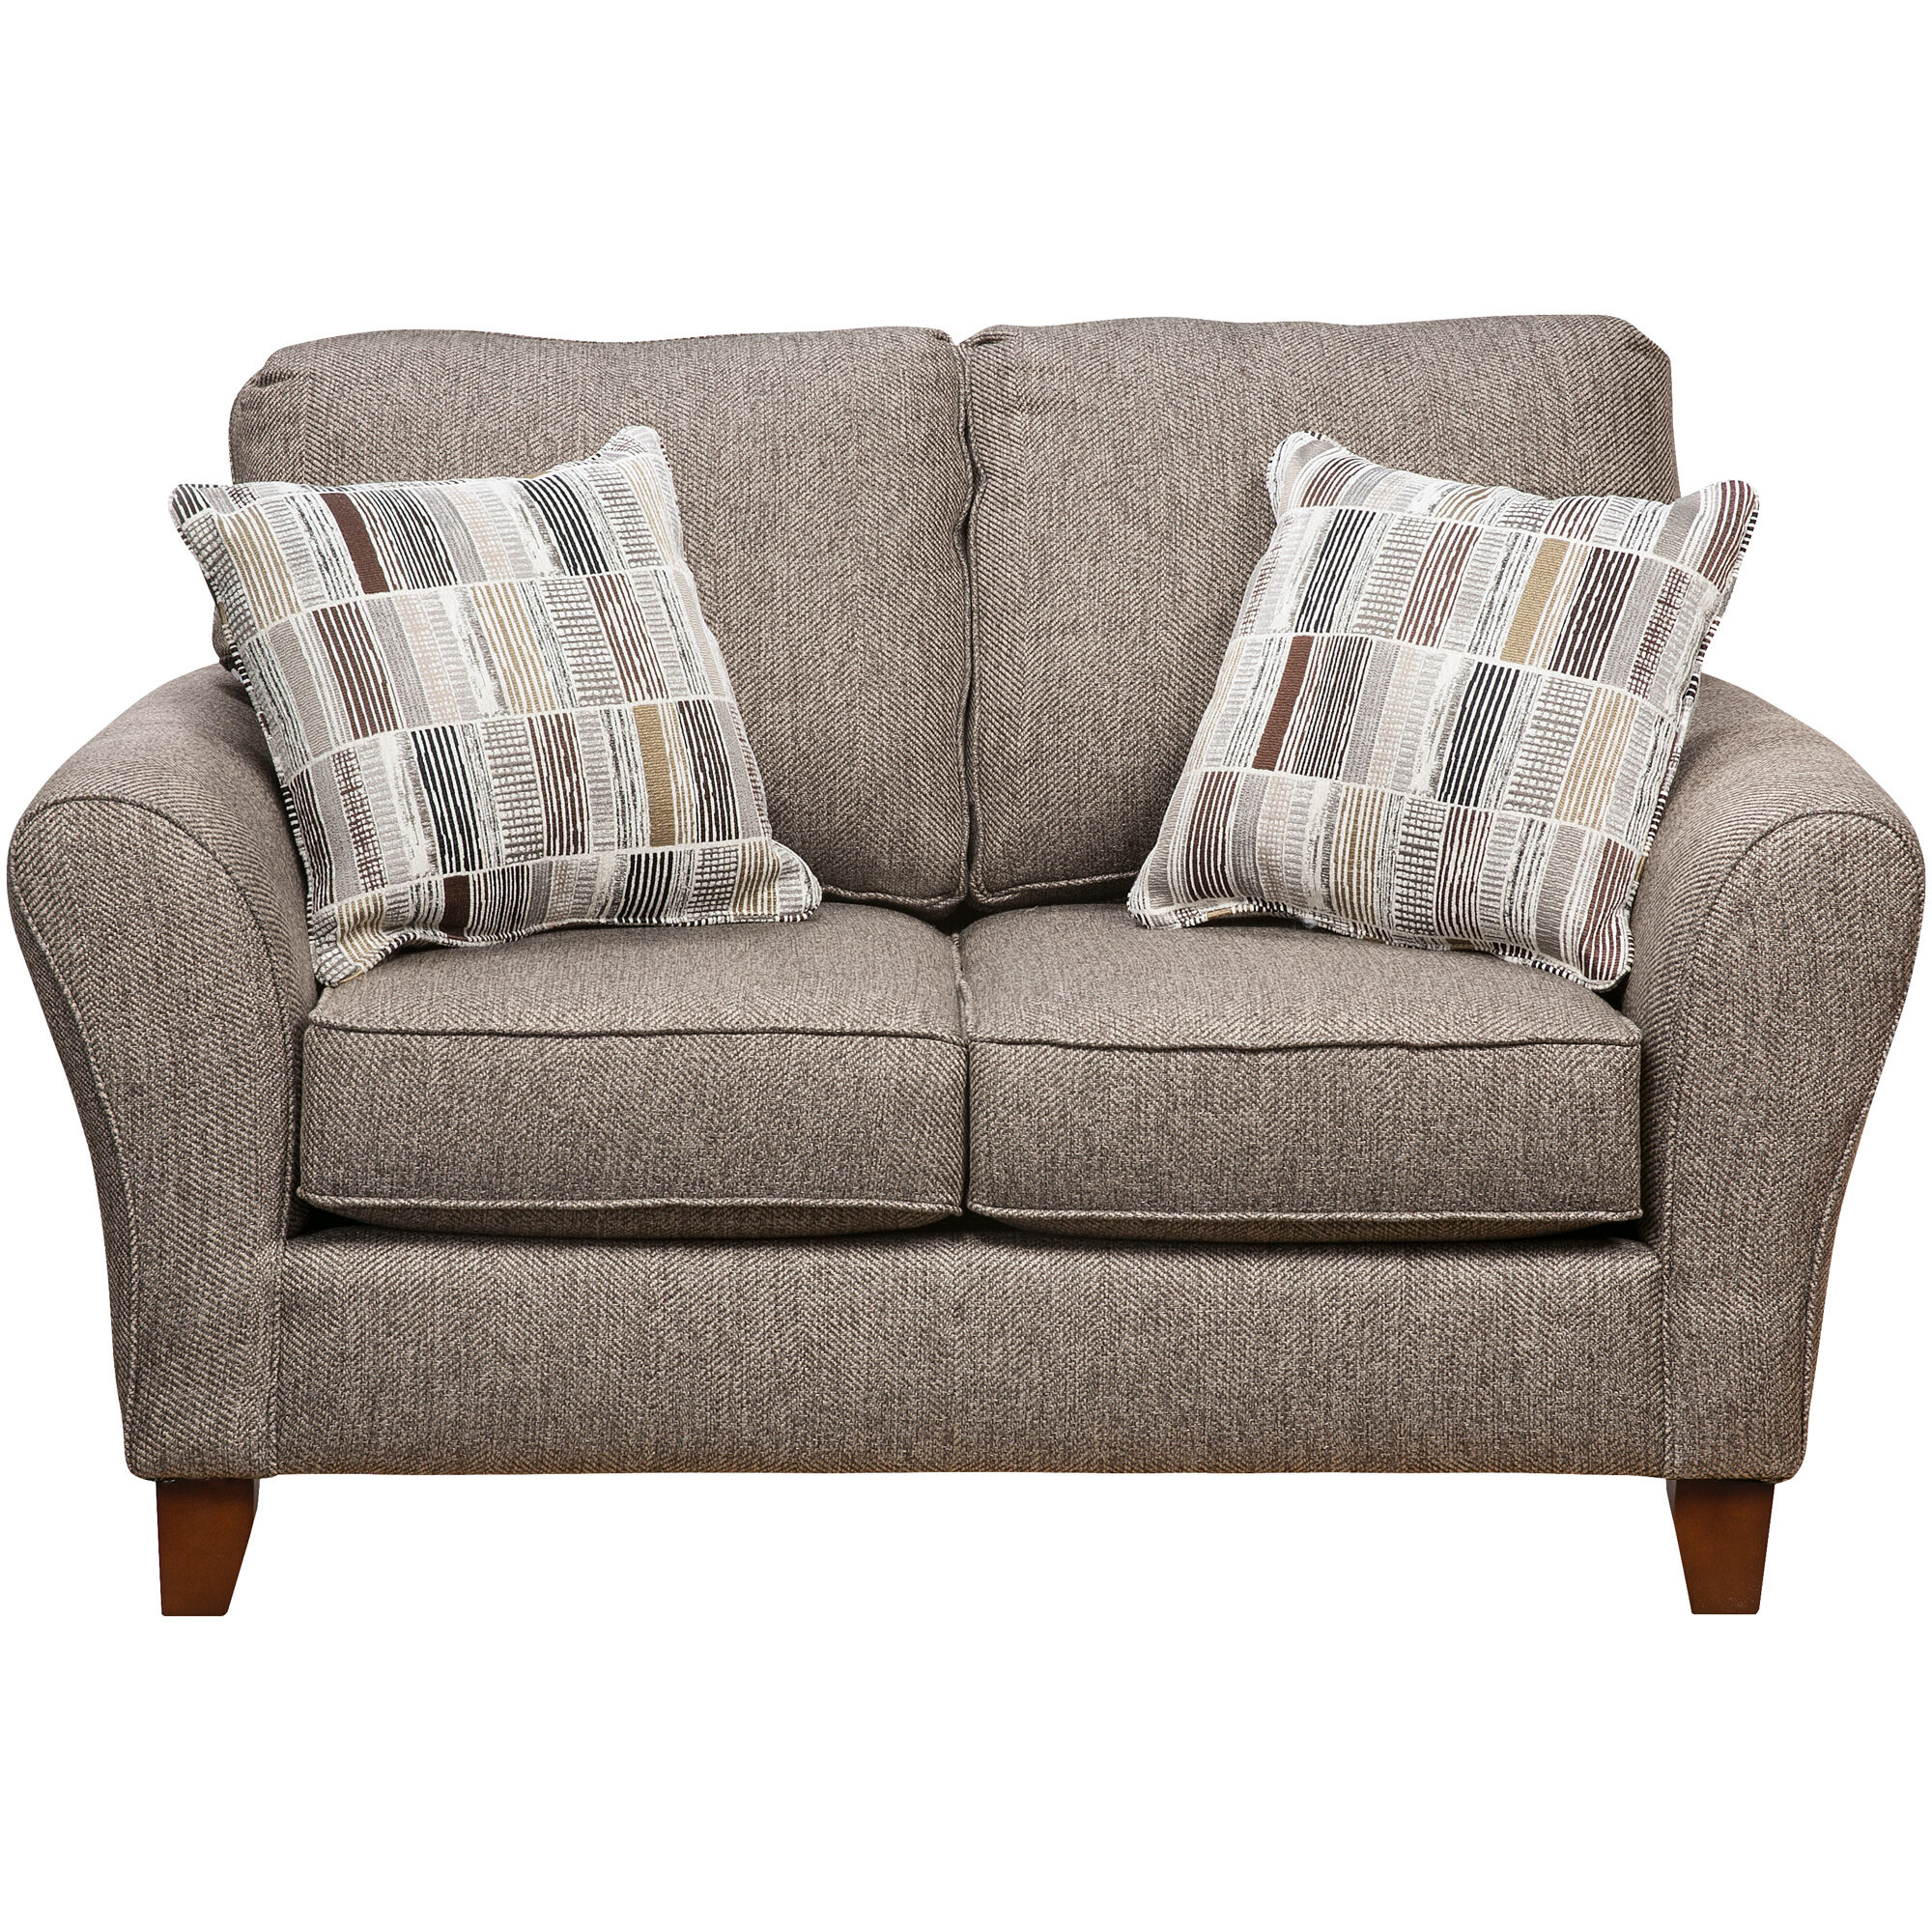 signature tan contemporary products design loveseat number item reclining by console double w ashley brayburn